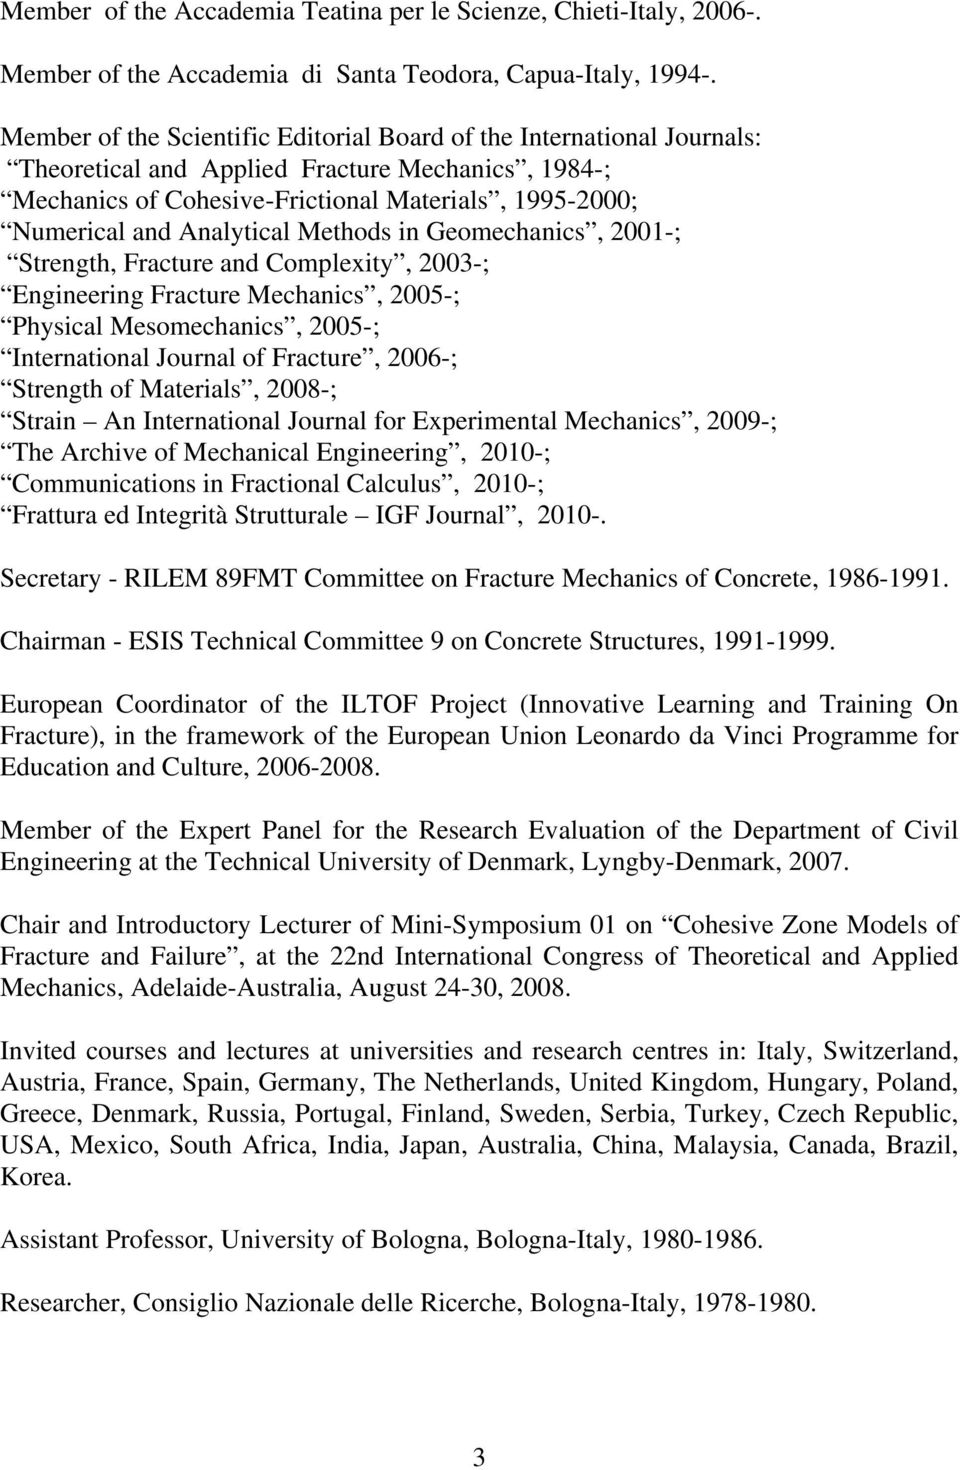 Analytical Methods in Geomechanics, 2001-; Strength, Fracture and Complexity, 2003-; Engineering Fracture Mechanics, 2005-; Physical Mesomechanics, 2005-; International Journal of Fracture, 2006-;